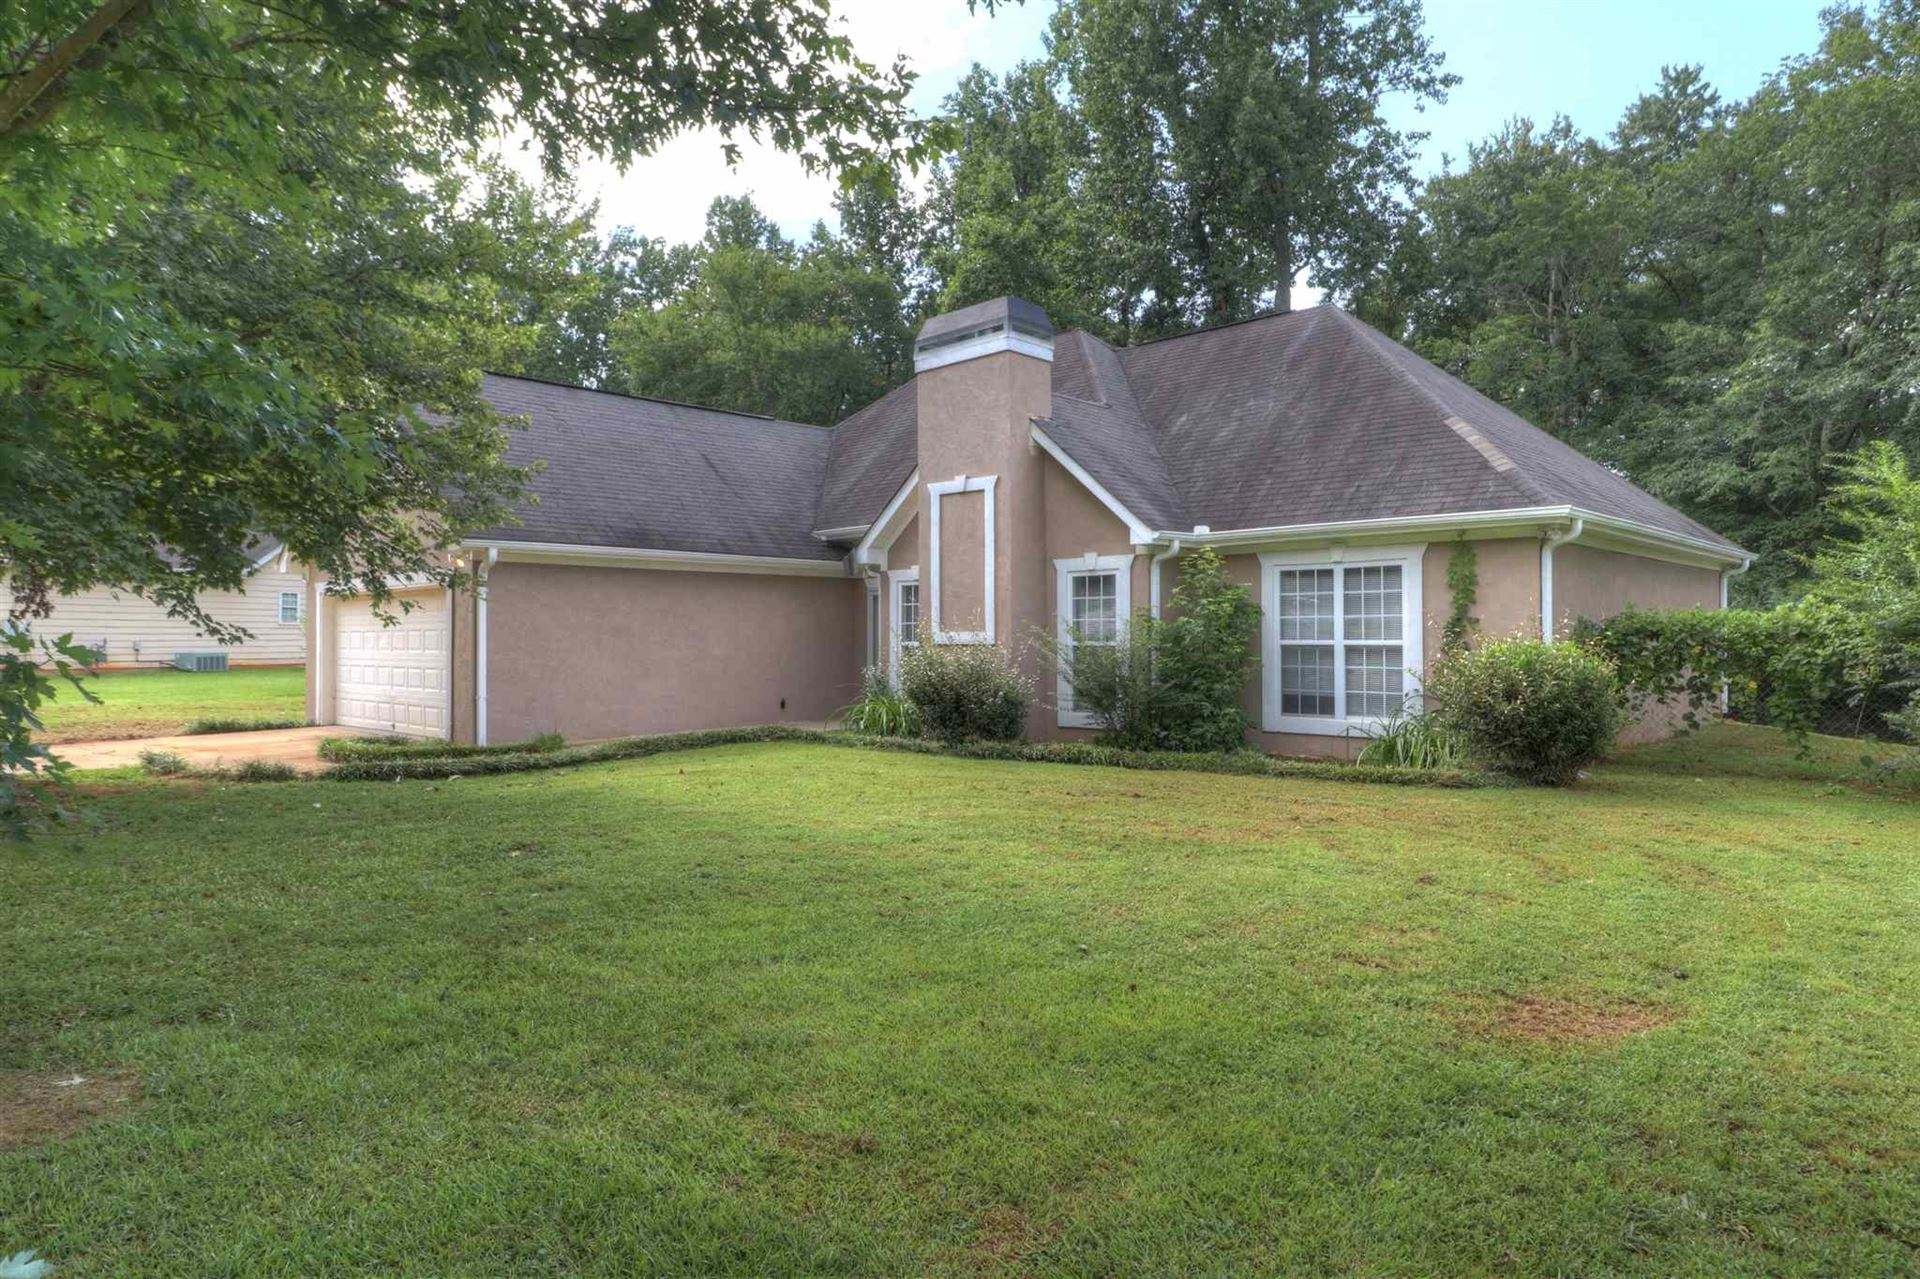 118 Chariot Dr, Griffin, GA 30224 - #: 8836686